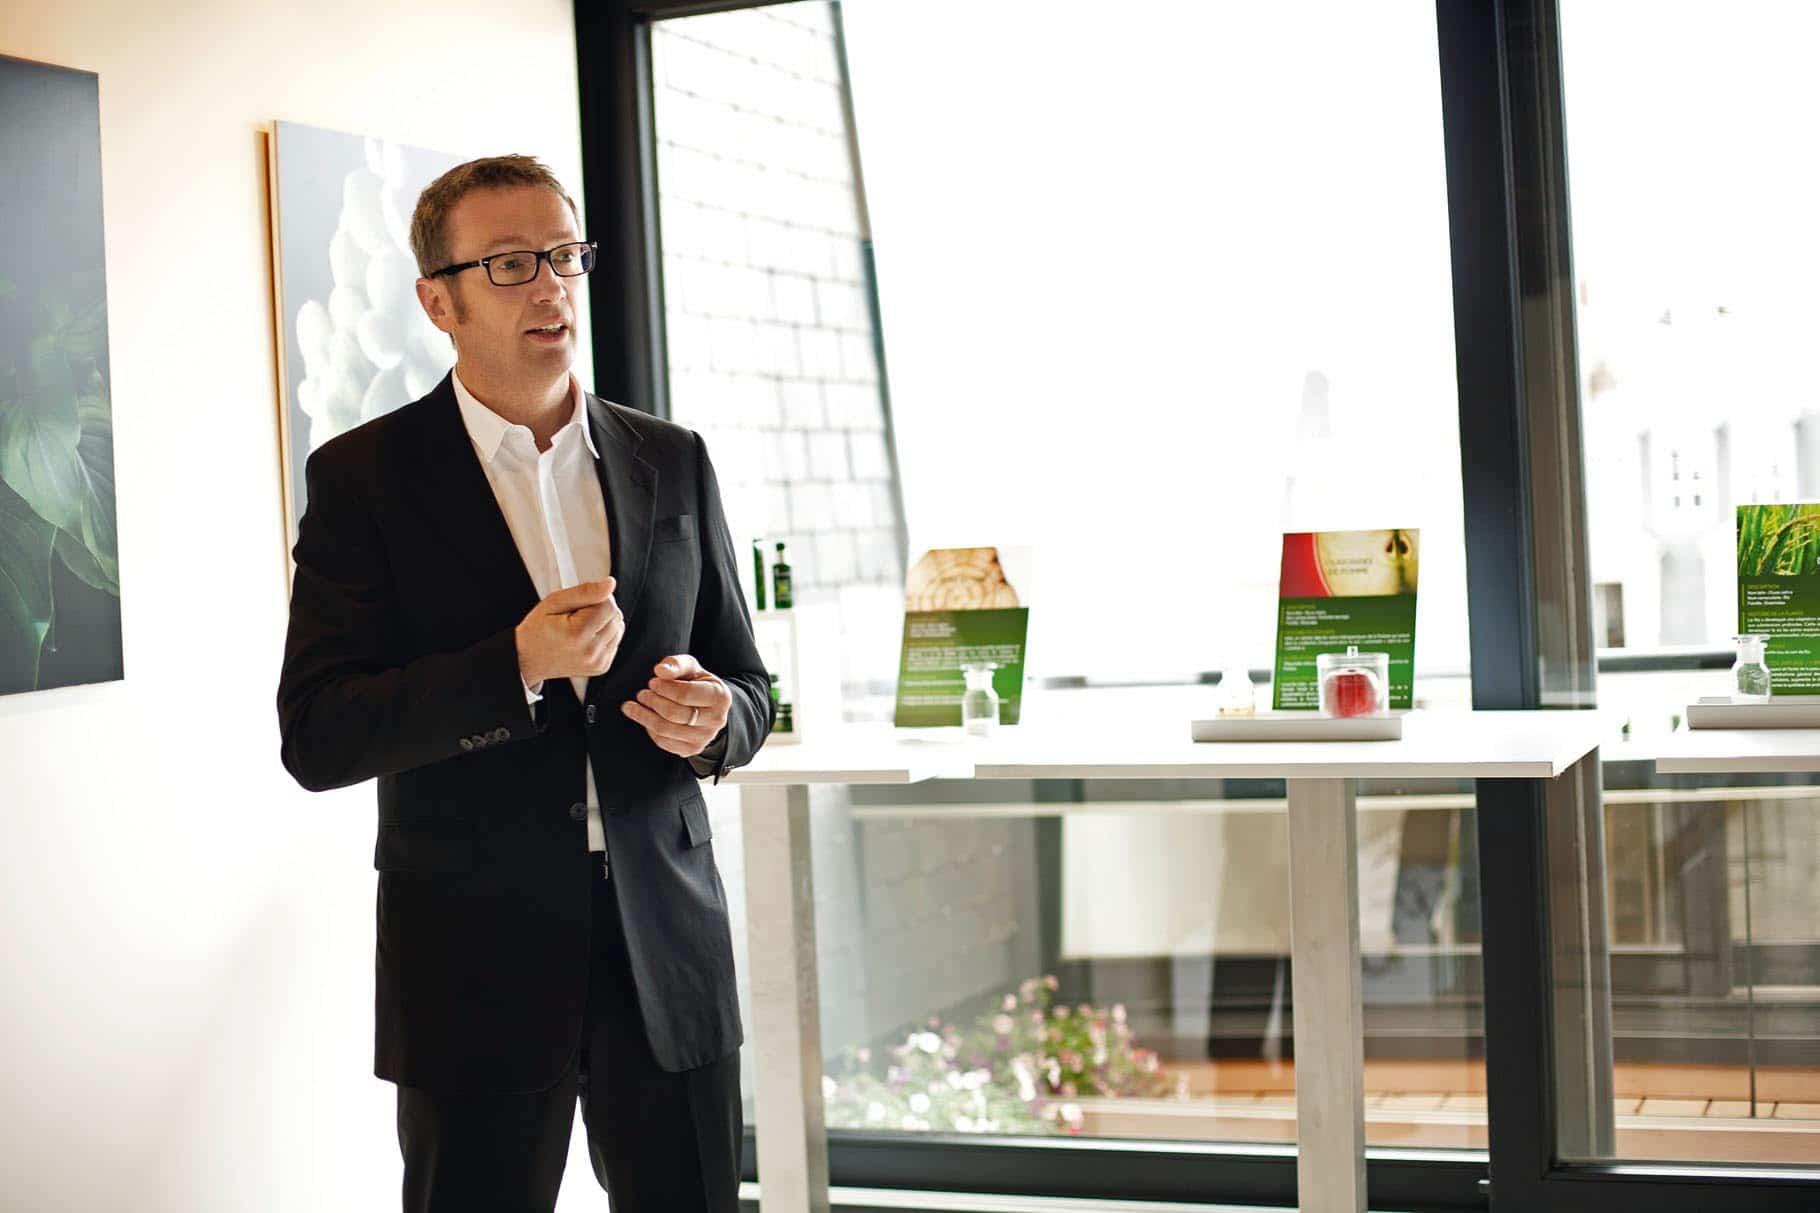 Xavier Ormancey, Research and Innovation Director at Yves Rocher.